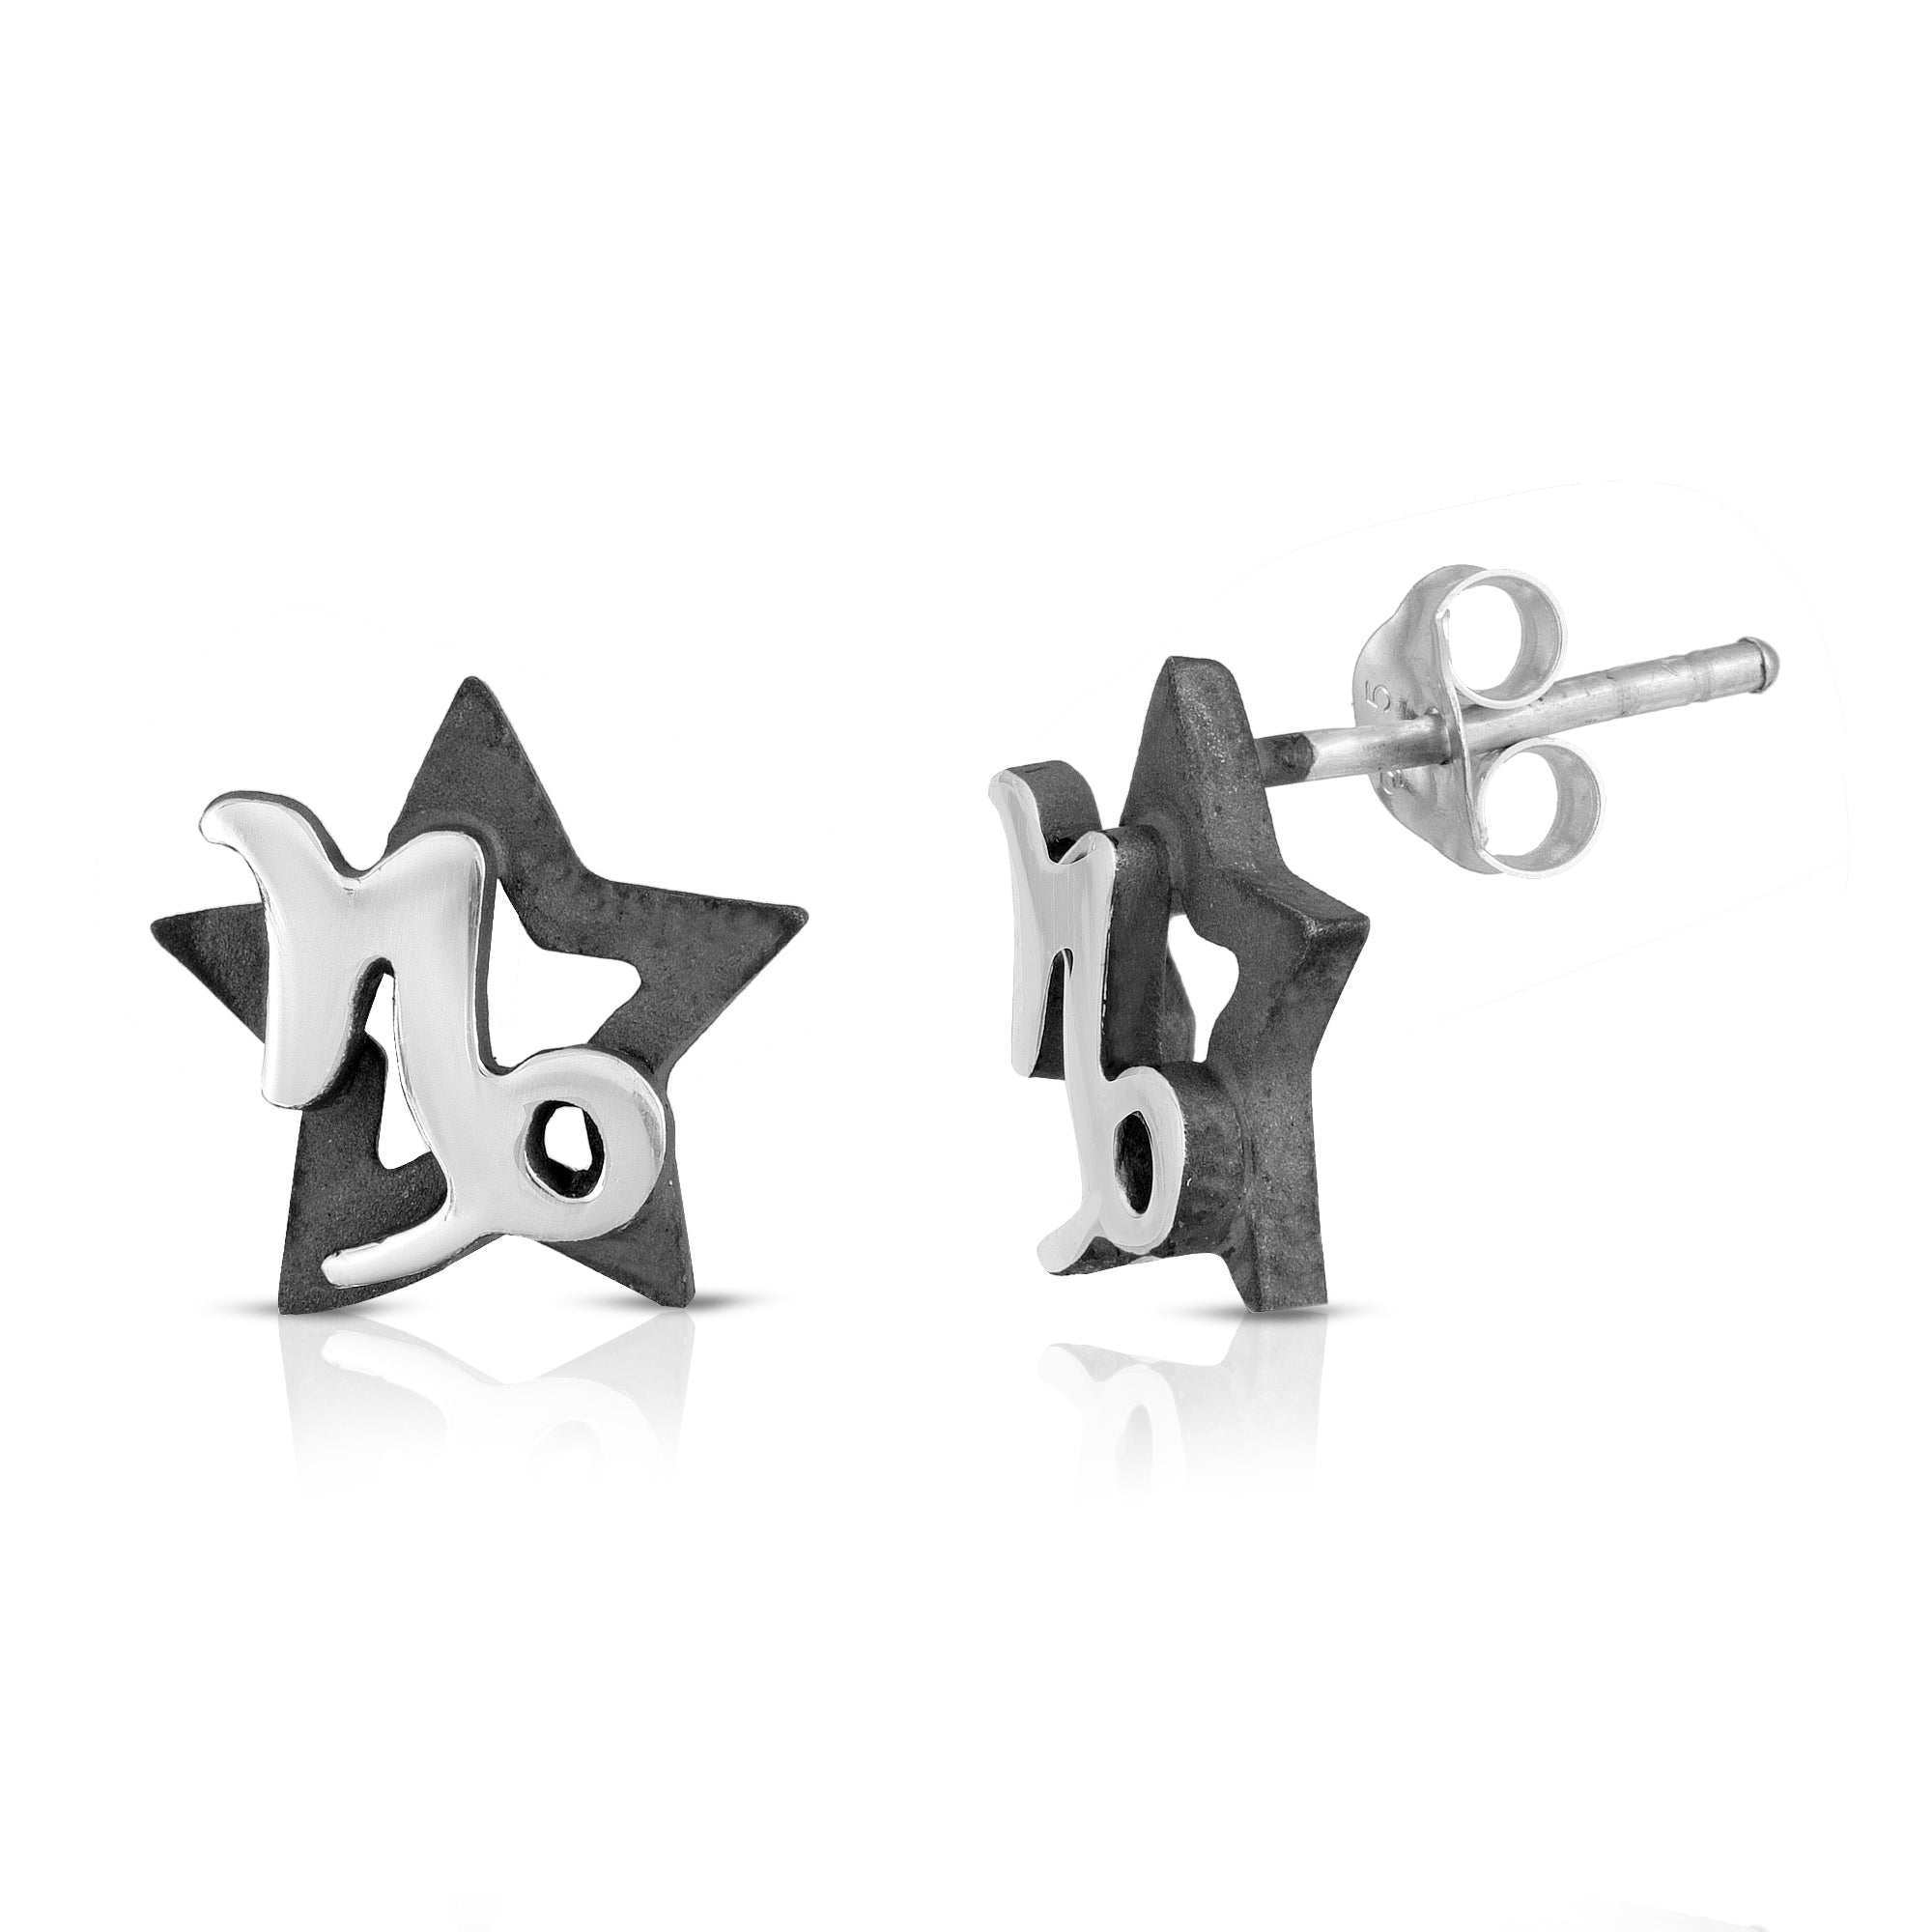 The W Brothers hand-crafted premium 925 Sterling silver star-sign stud earrings crafted in the highest quality of sterling silver with an oxidized star sign in the back with the beautiful Capricorn zodiac horoscope sign symbol projecting on the front. Available in premium sterling silver, real 18k yellow gold & rose gold. Shop your original look only at thewbros.com